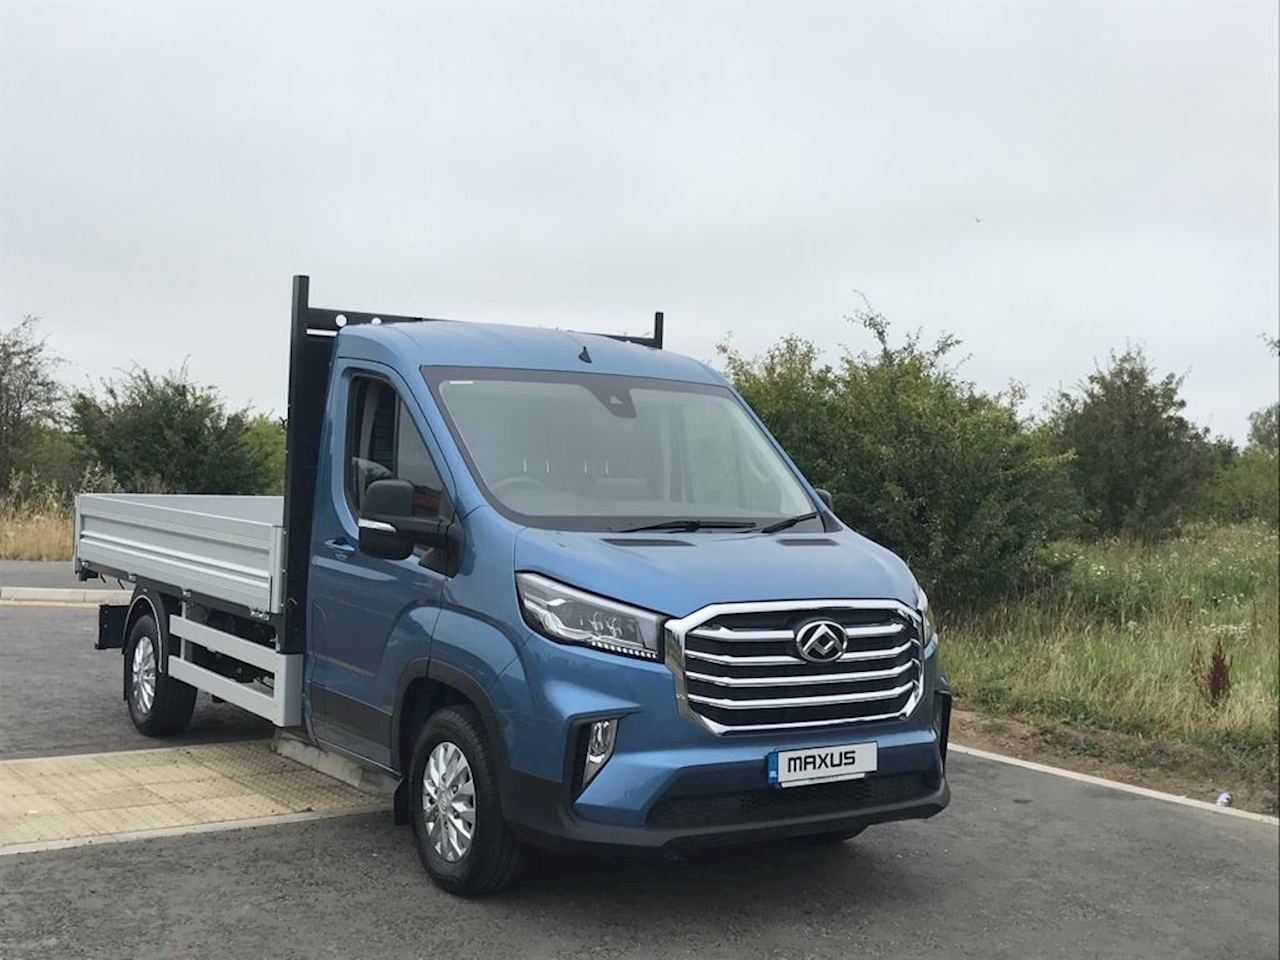 SAIC MAXUS Deliver 9 Chassis Cab RWD Basic Alloy Tipper 2.0 Manual Diesel